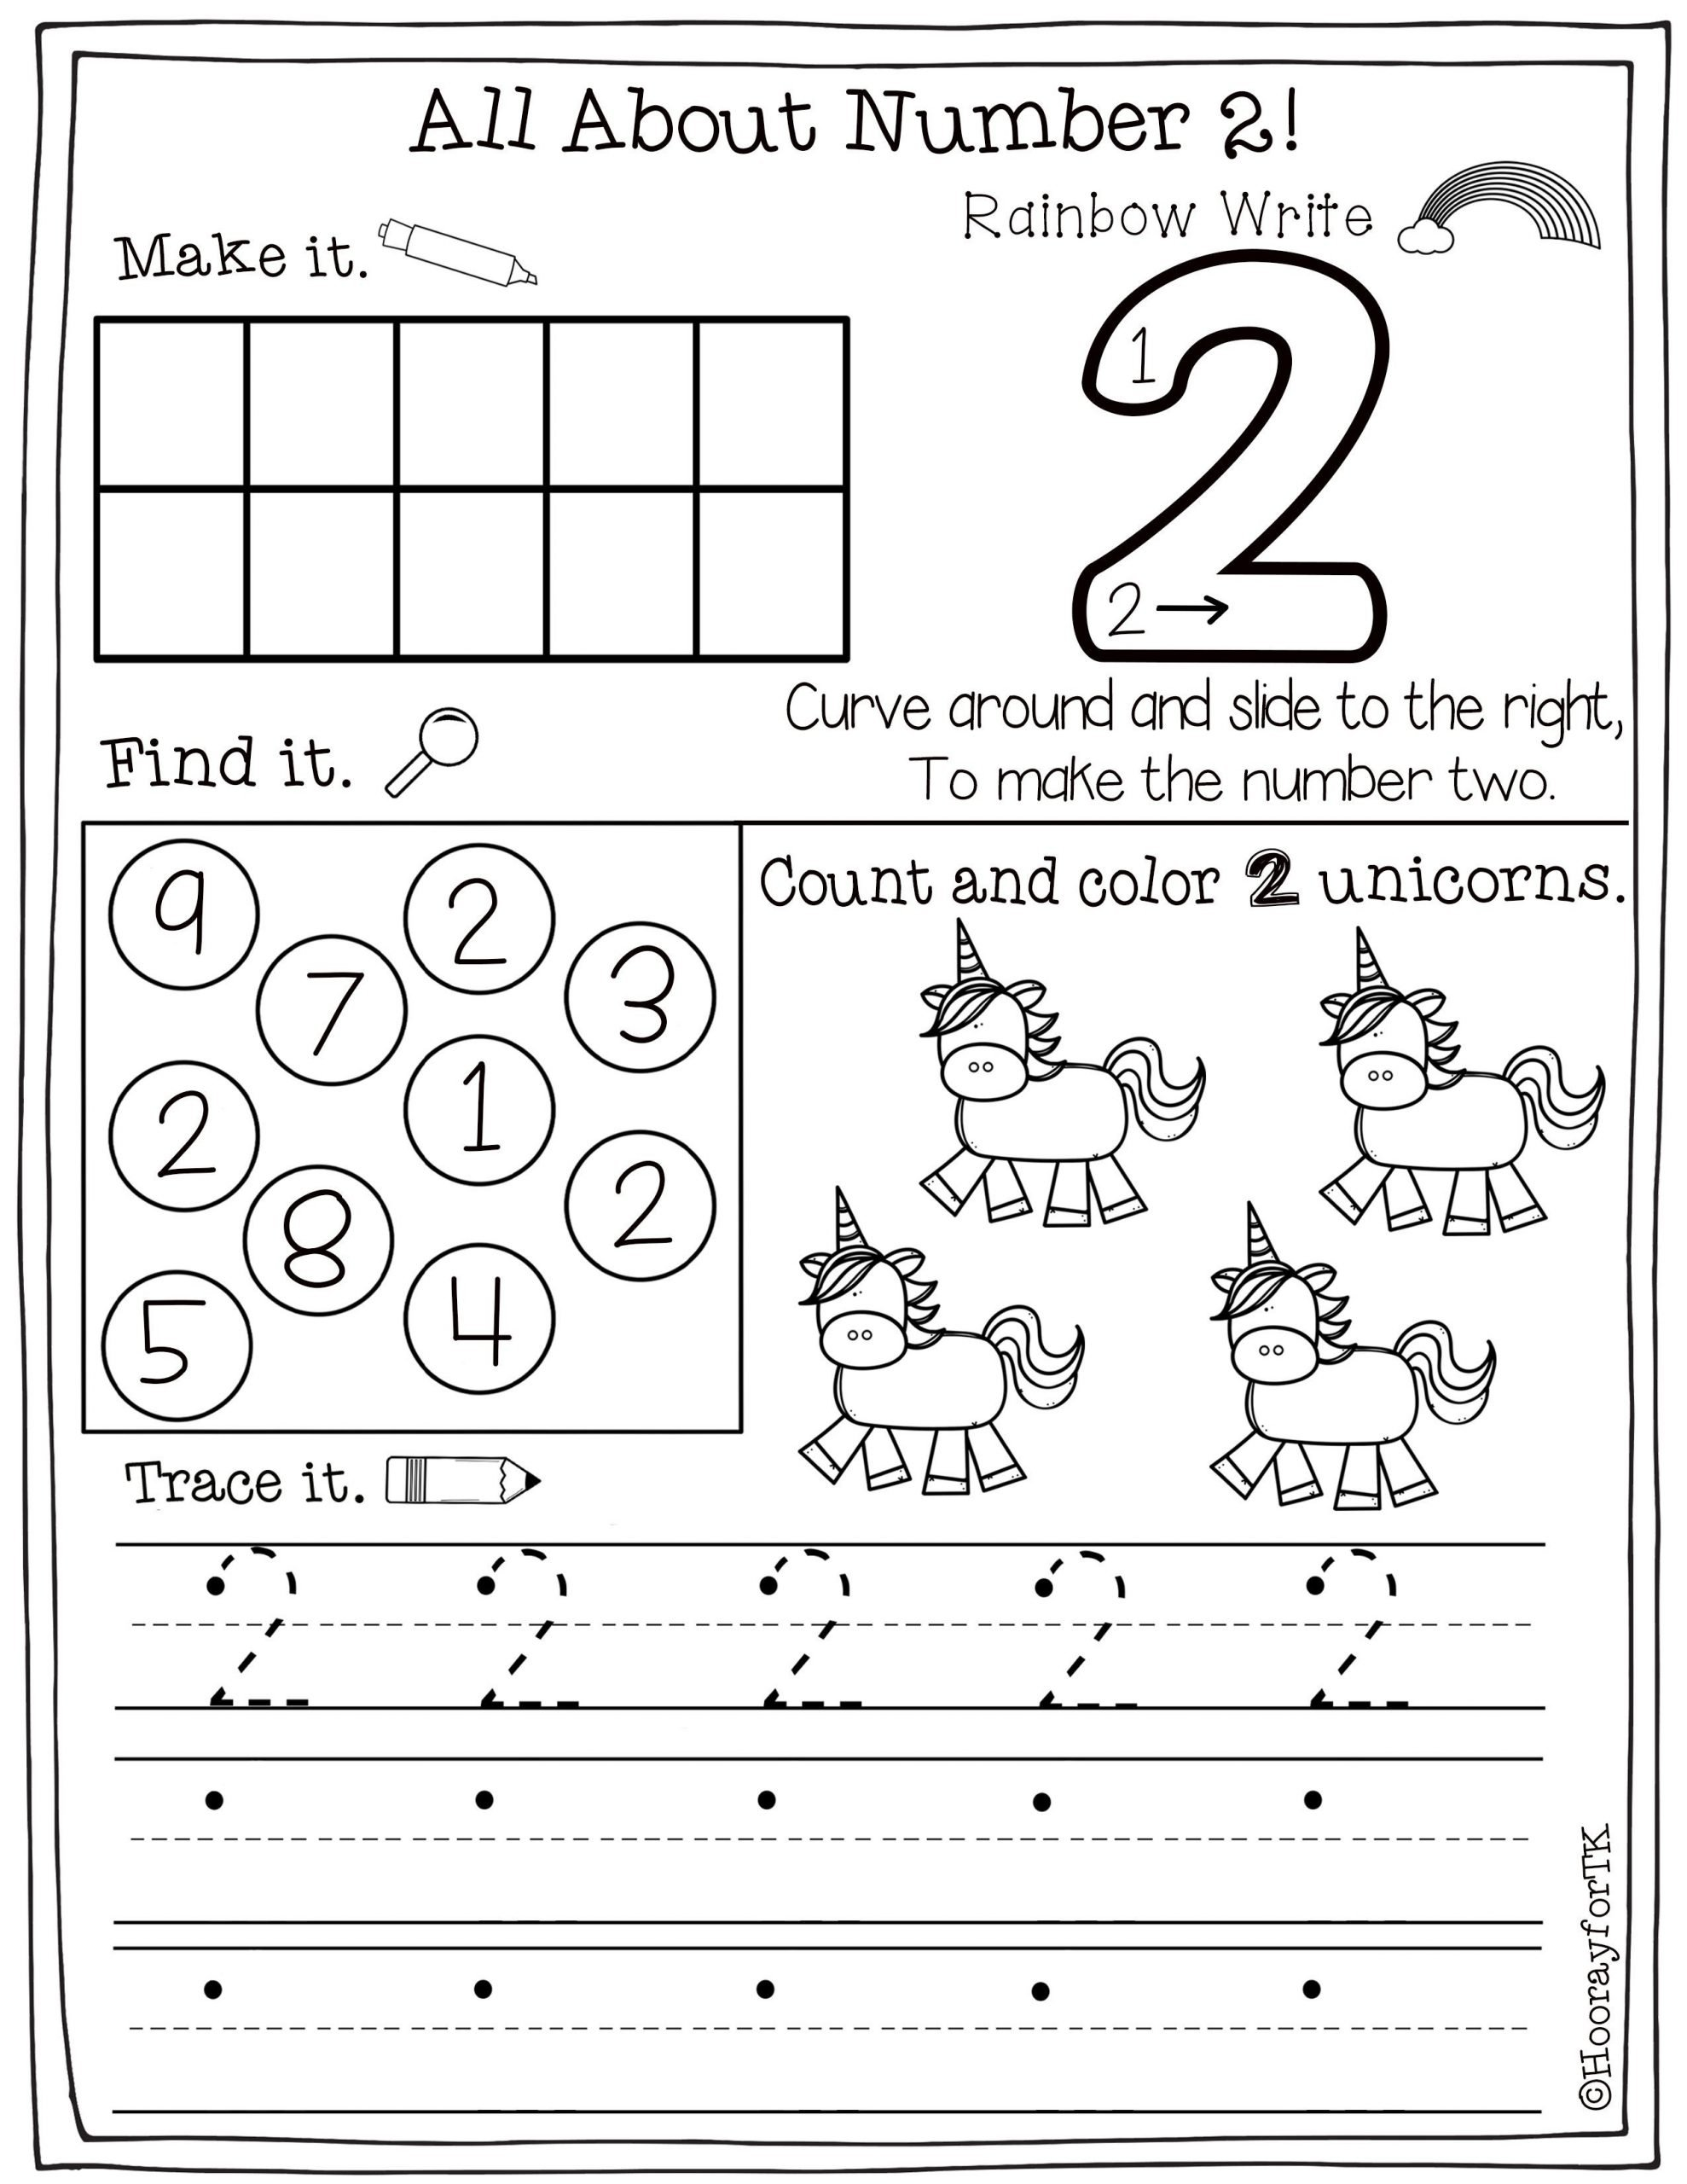 Tracing Number Worksheets 1 20 Printable Number Worksheets In 2020